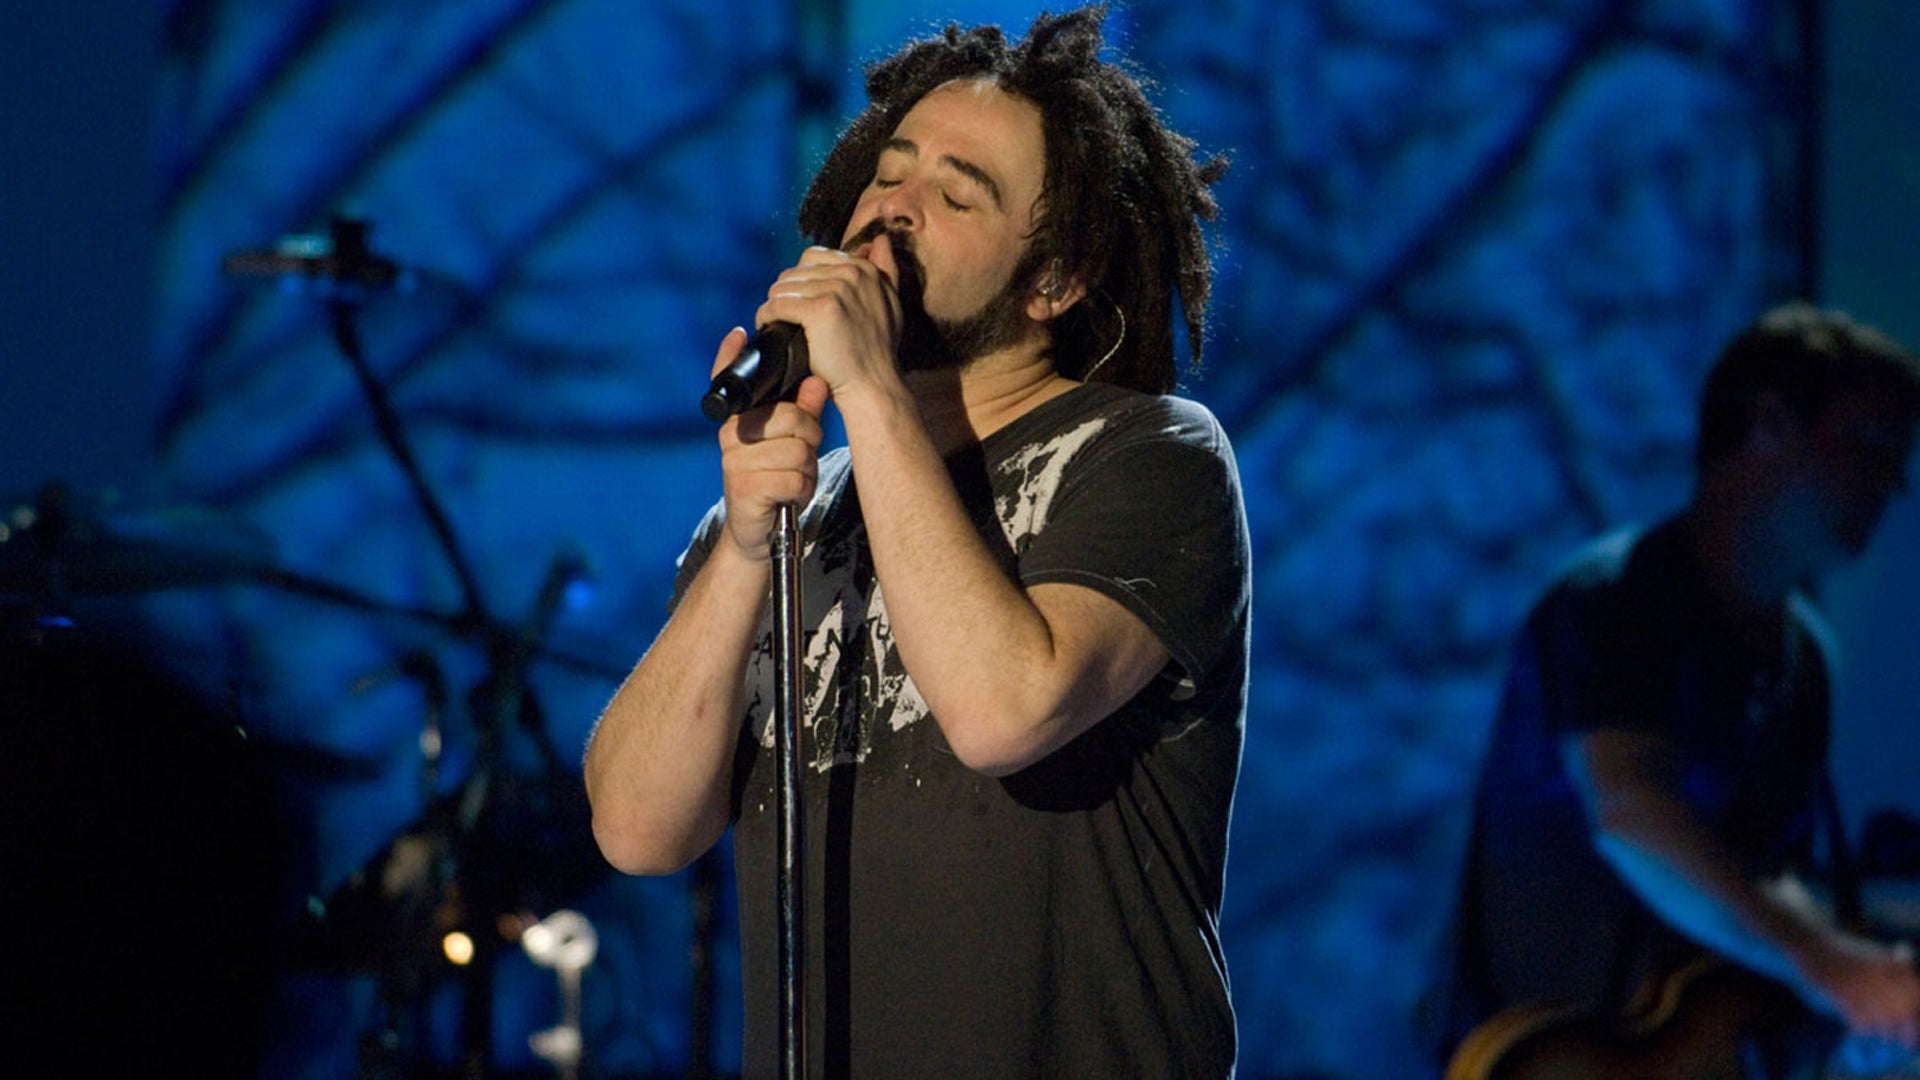 Counting Crows: Saturday Nights and Sunday Mornings